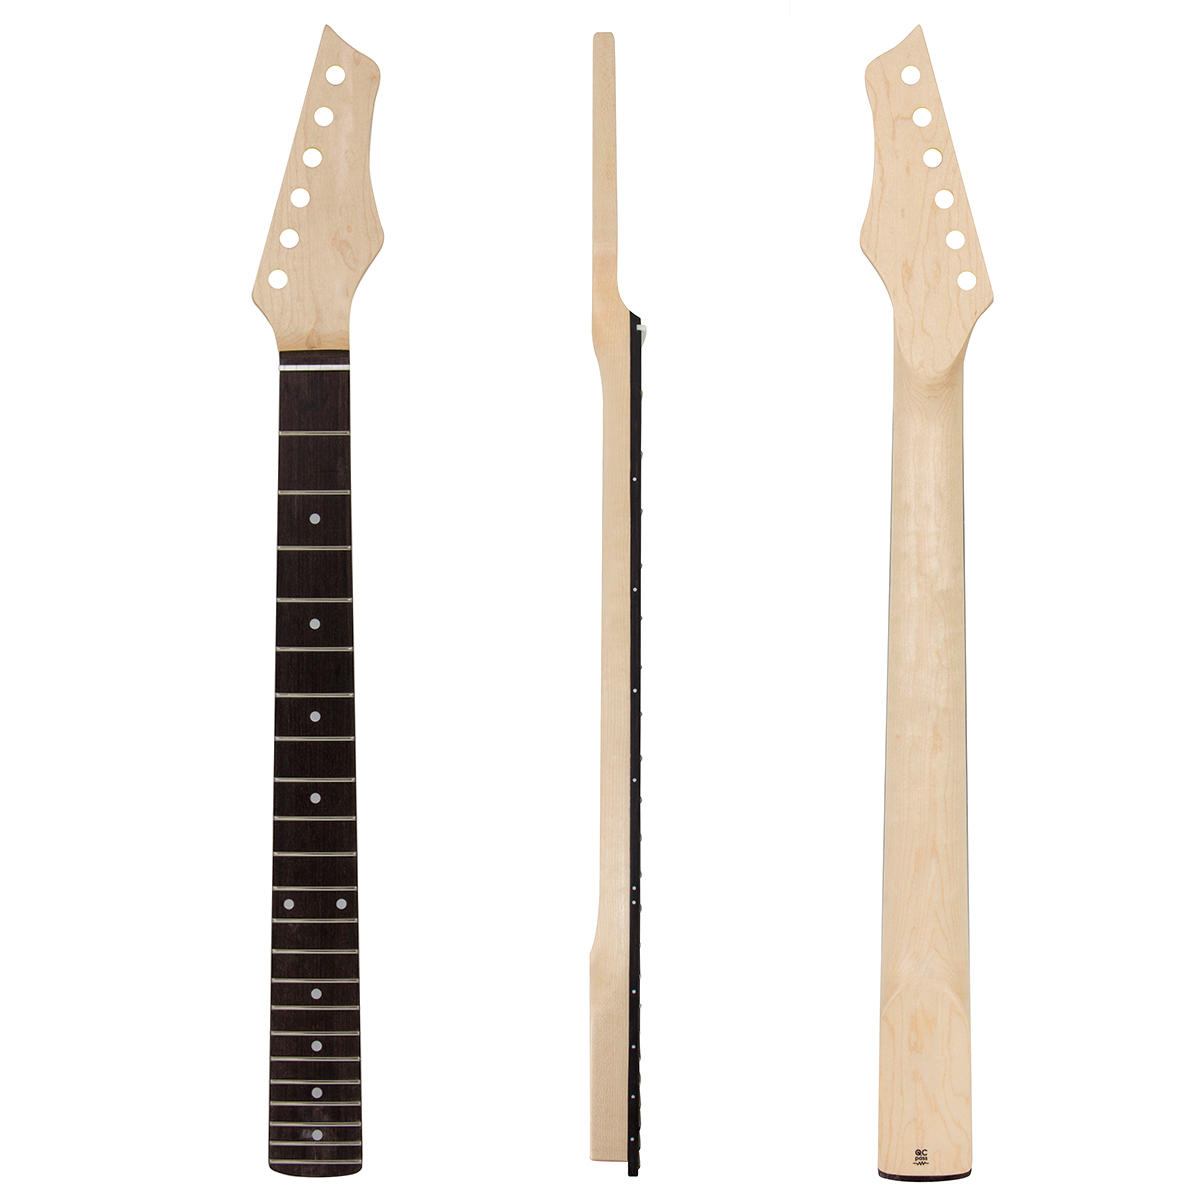 Kmise Electric Guitar Neck Canada Maple 22 Frets...